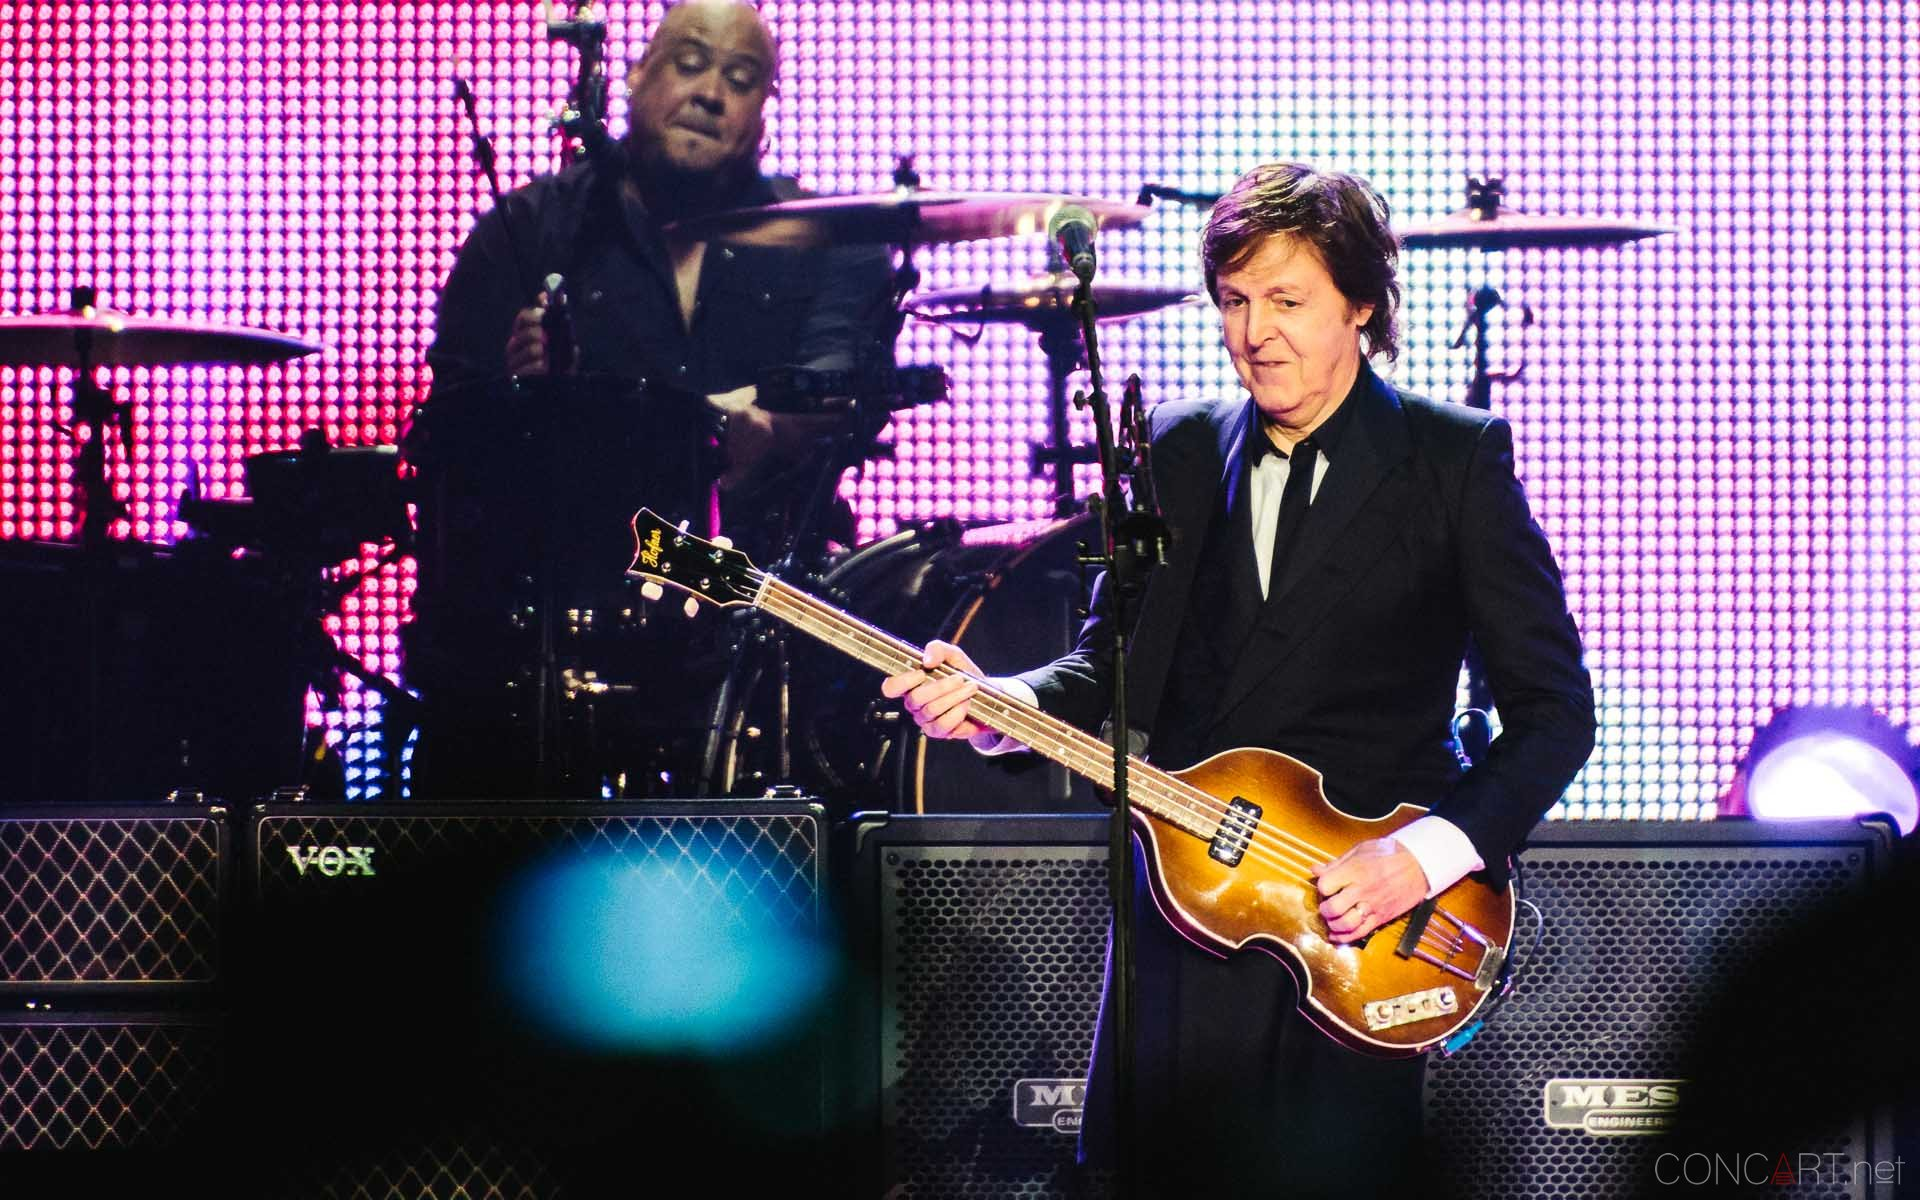 paul_mccartney_live_bankers_life_indianapolis_2013-09